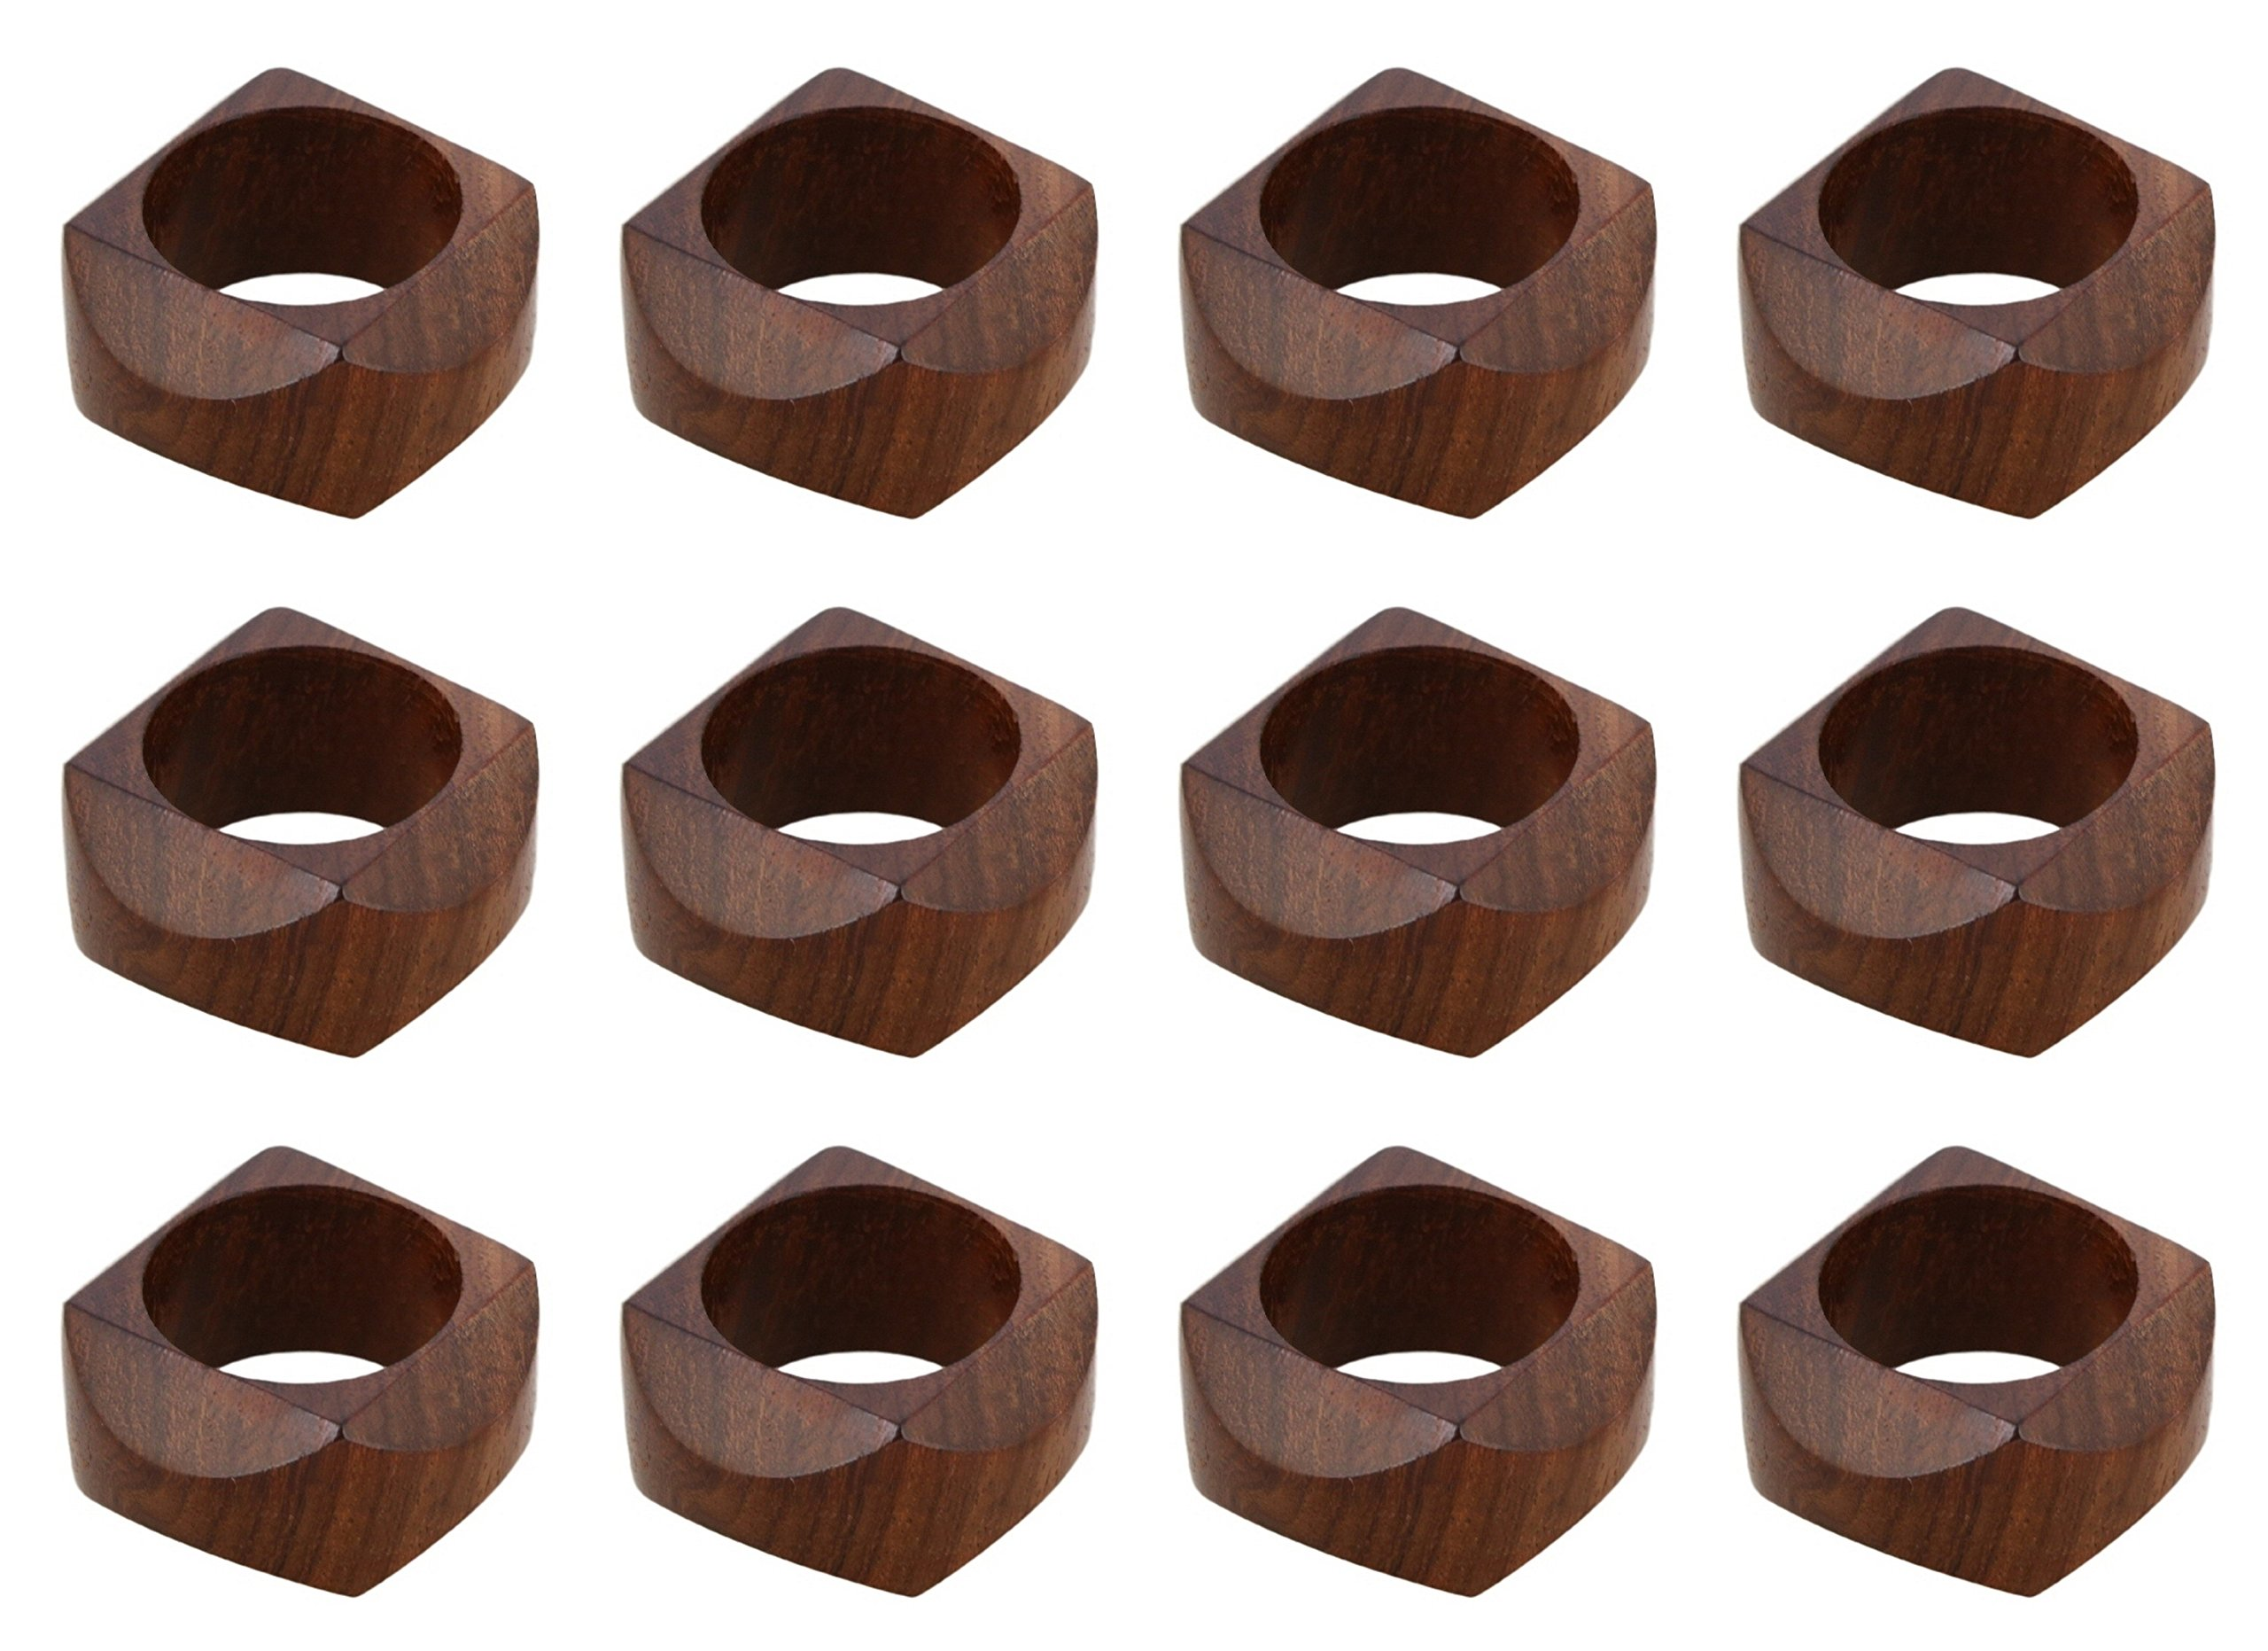 ARN Craft Handmade Wedding Party Decorations Wood Napkin Rings Set of 12 for Dinner Ideas  (CW- 09-12)